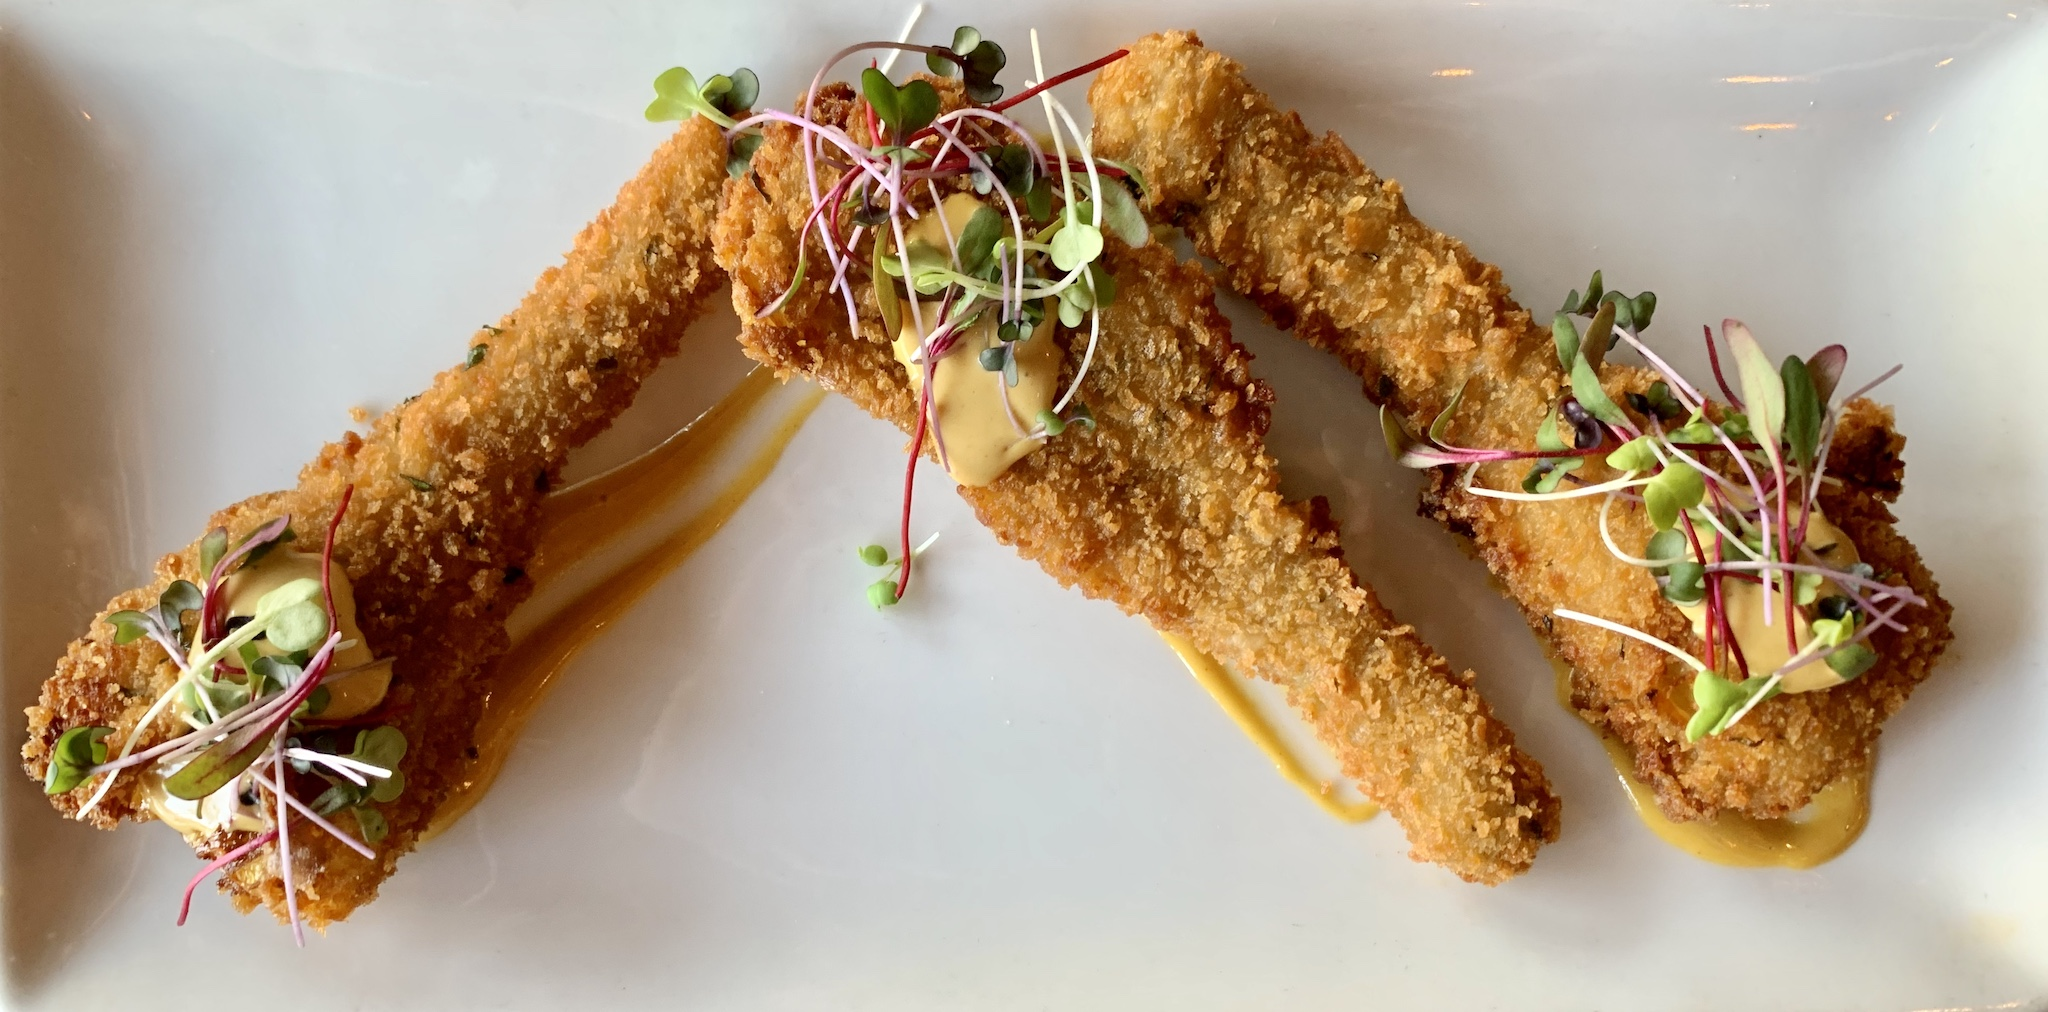 Parmaesan Panko Crusted Long Stem Artichoke Hearts with sunflower aioli